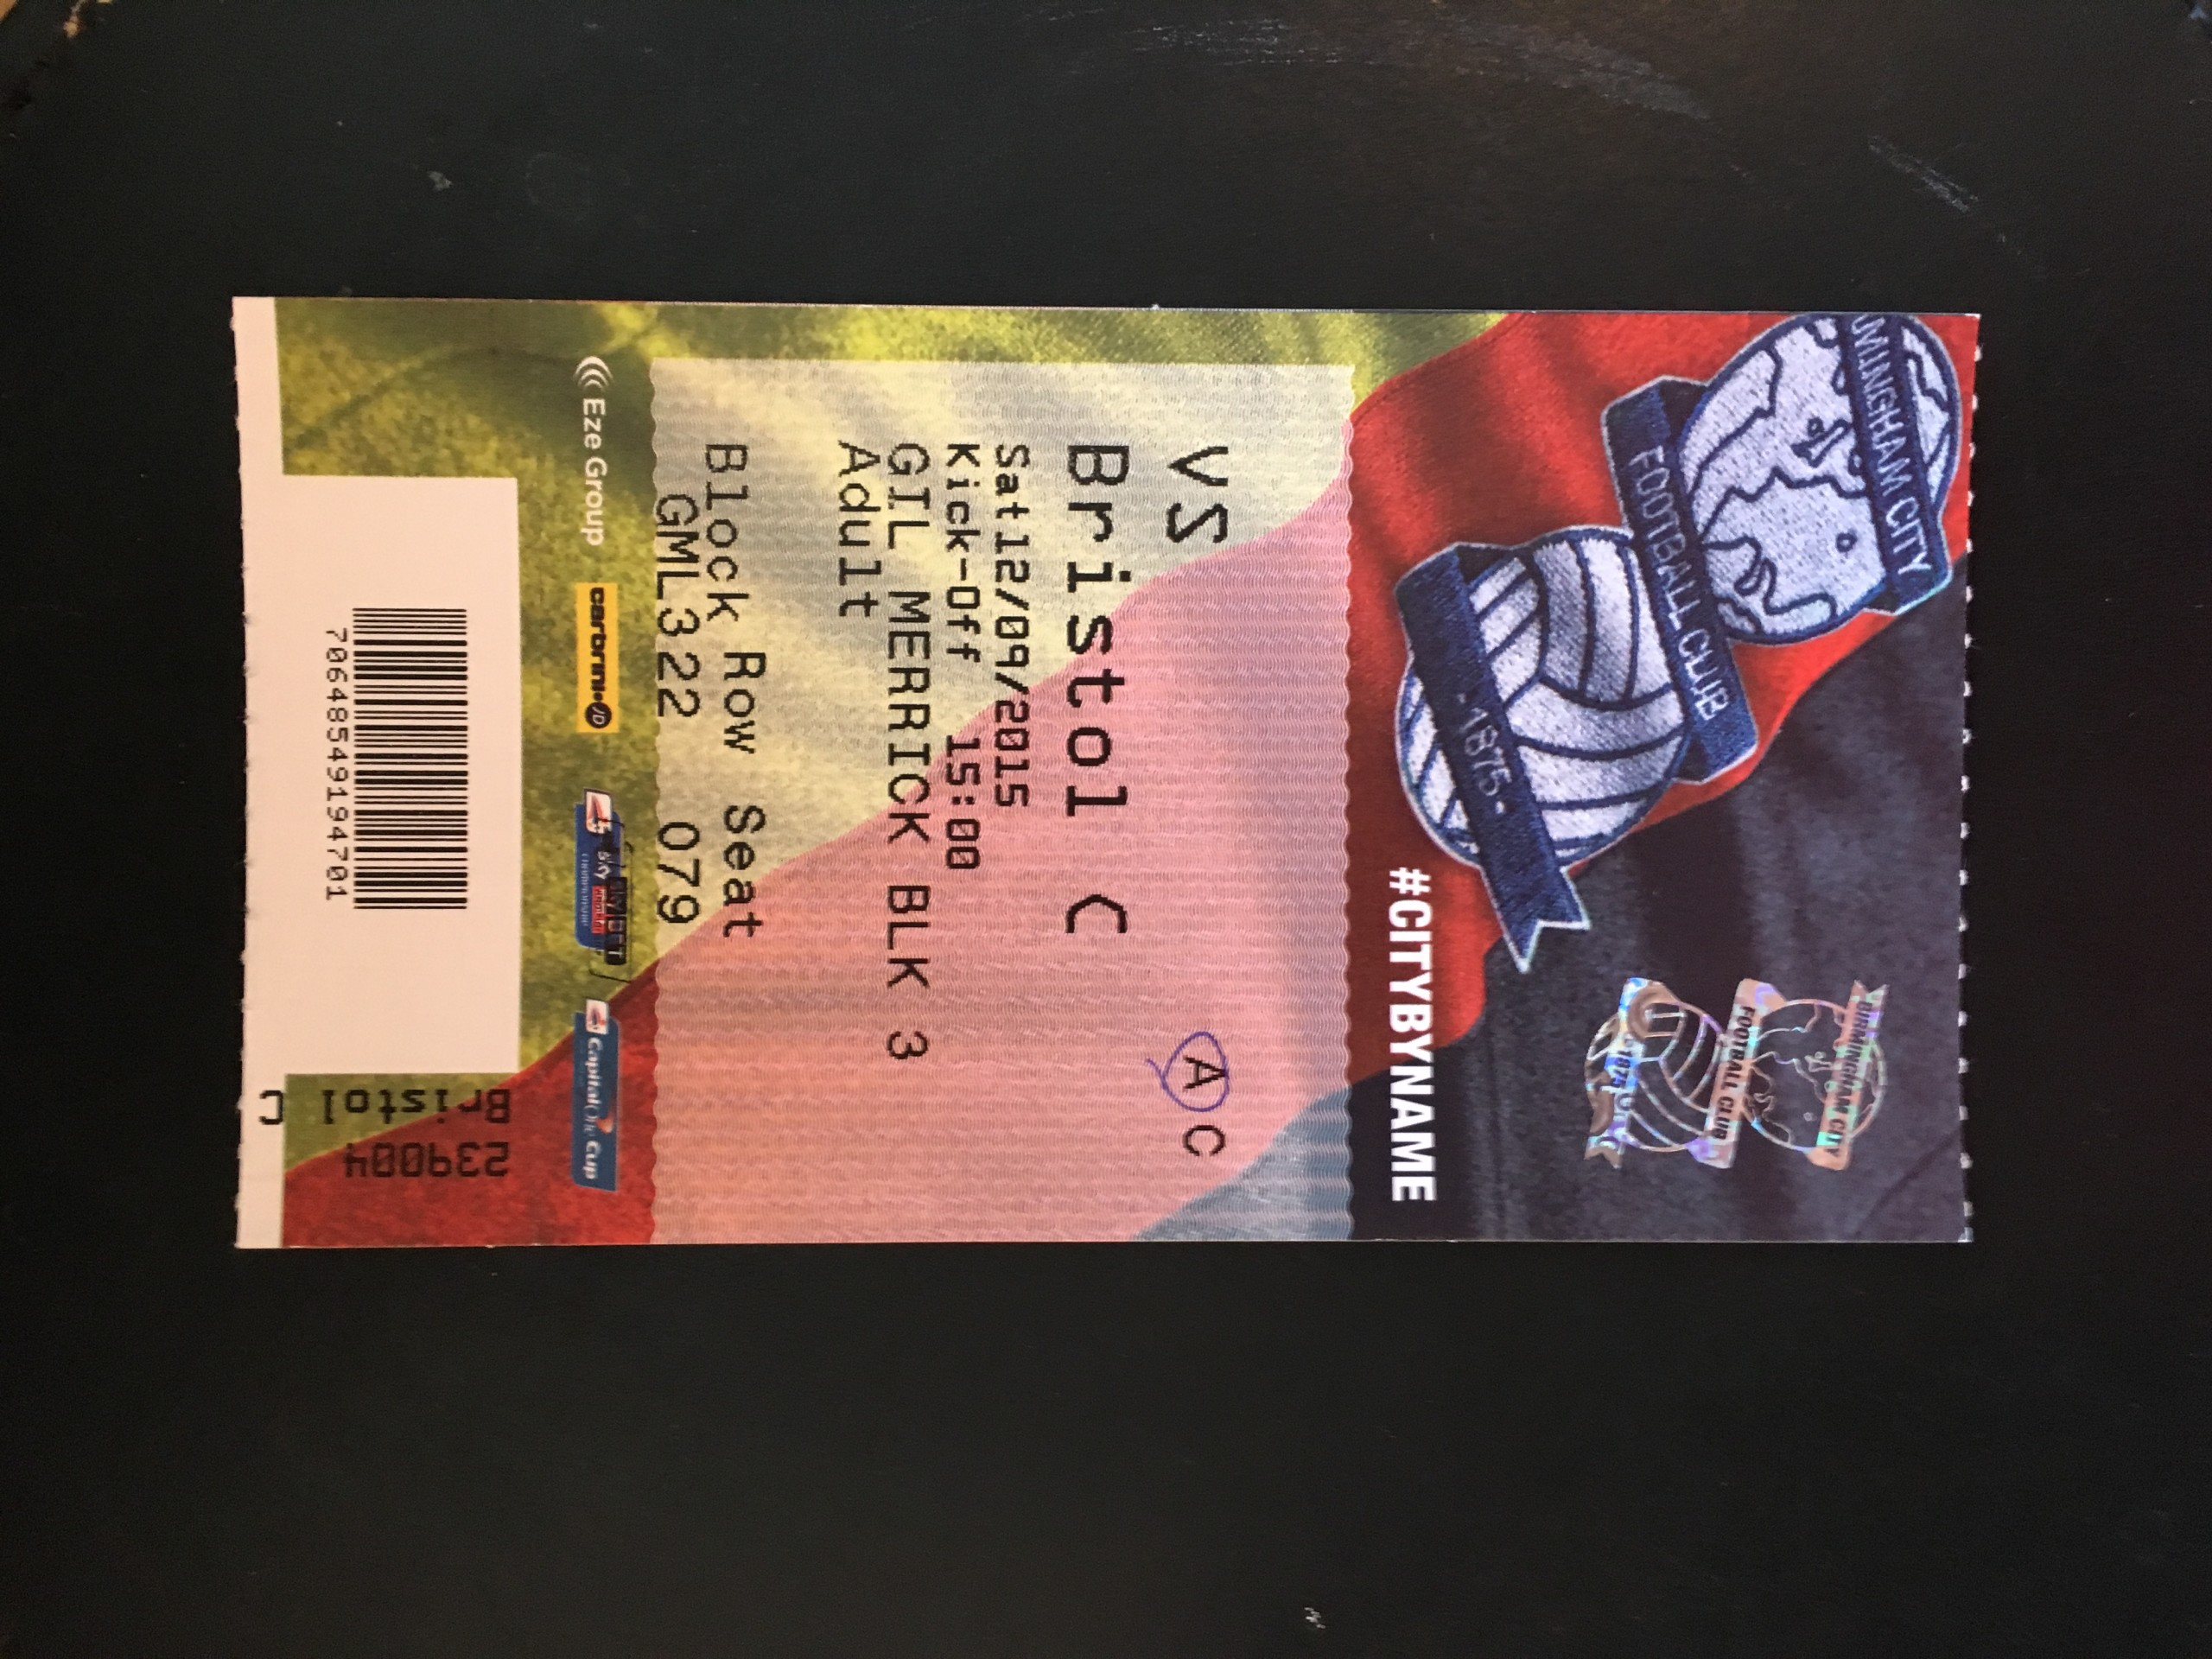 Birmingham City v Bristol City 12-09-2015 Ticket